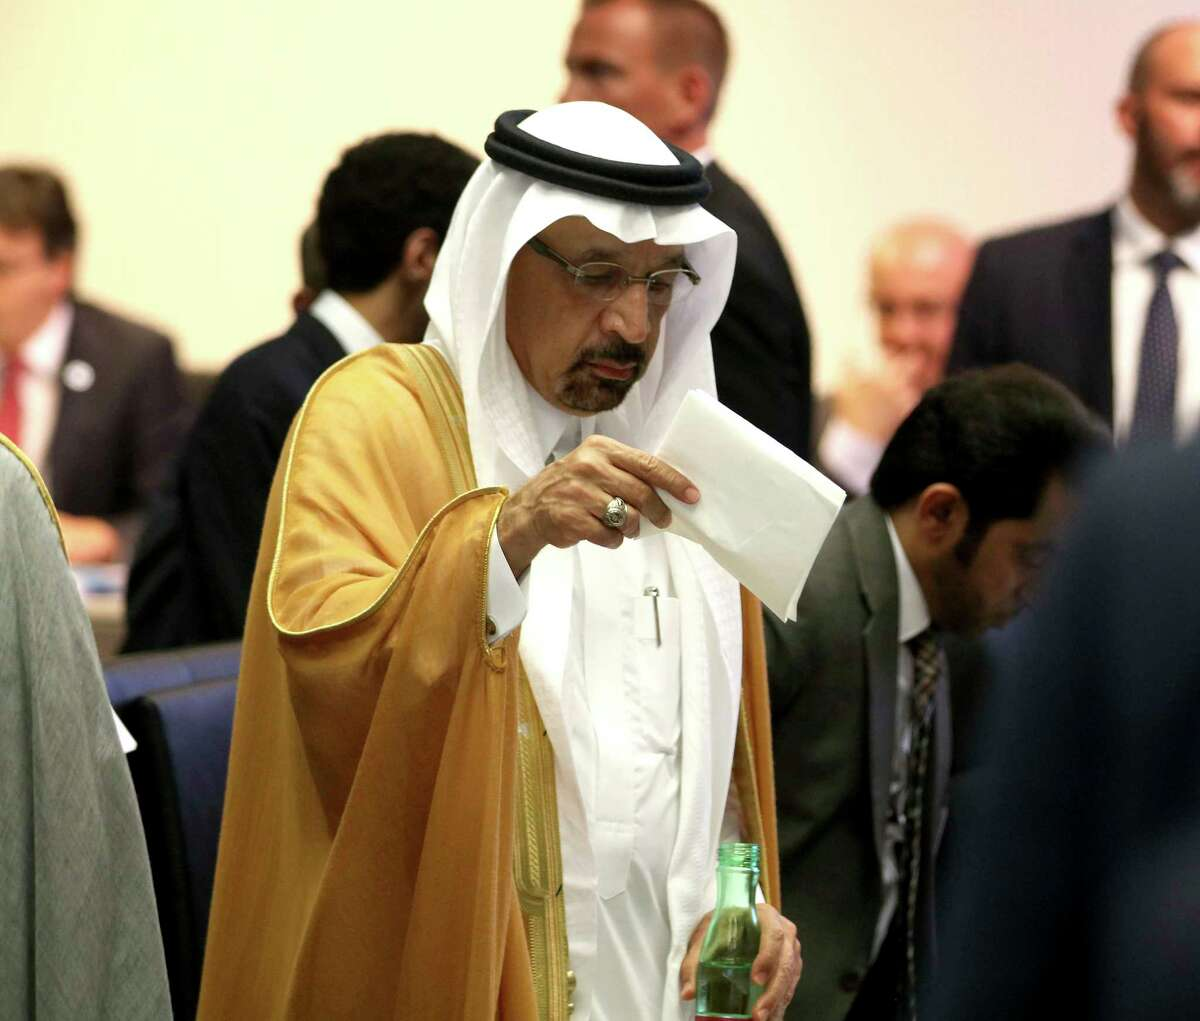 Khalid Al-Falih, Minister of Energy, Industry and Mineral Resources of Saudi Arabia stands prior to the start of a meeting the Organization of the Petroleum Exporting Countries, OPEC, at their headquarters in Vienna, Austria, Monday, July 1, 2019.